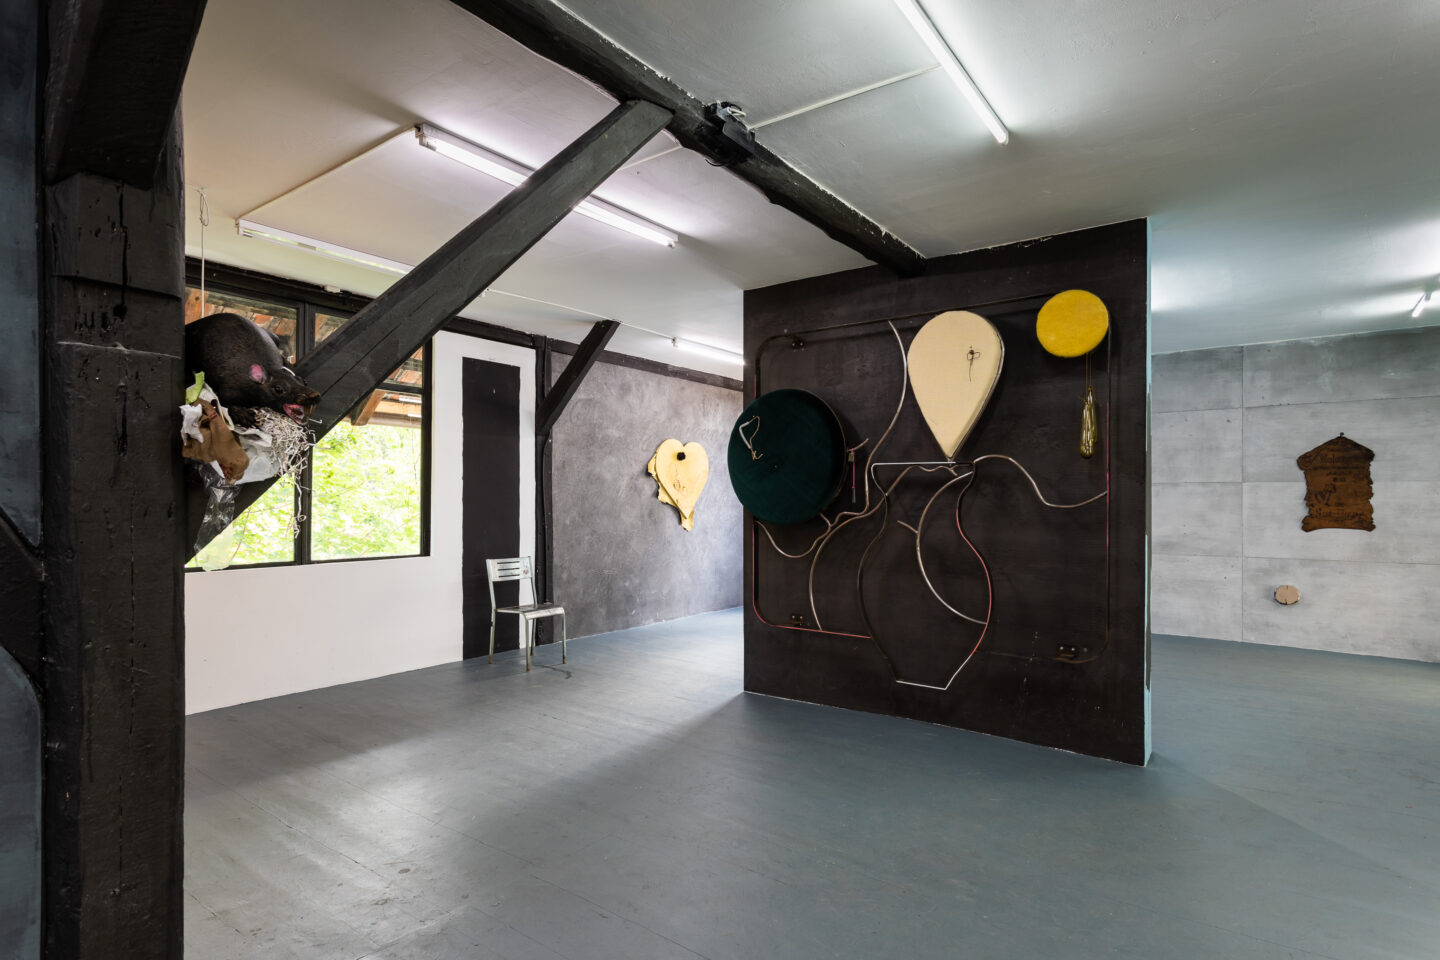 Exhibition View Groupshow «Whispering Walls» at Last Tango, Zurich, 2020 / Photo: Kilian Bannwart / Courtesy: the artists and Last Tango